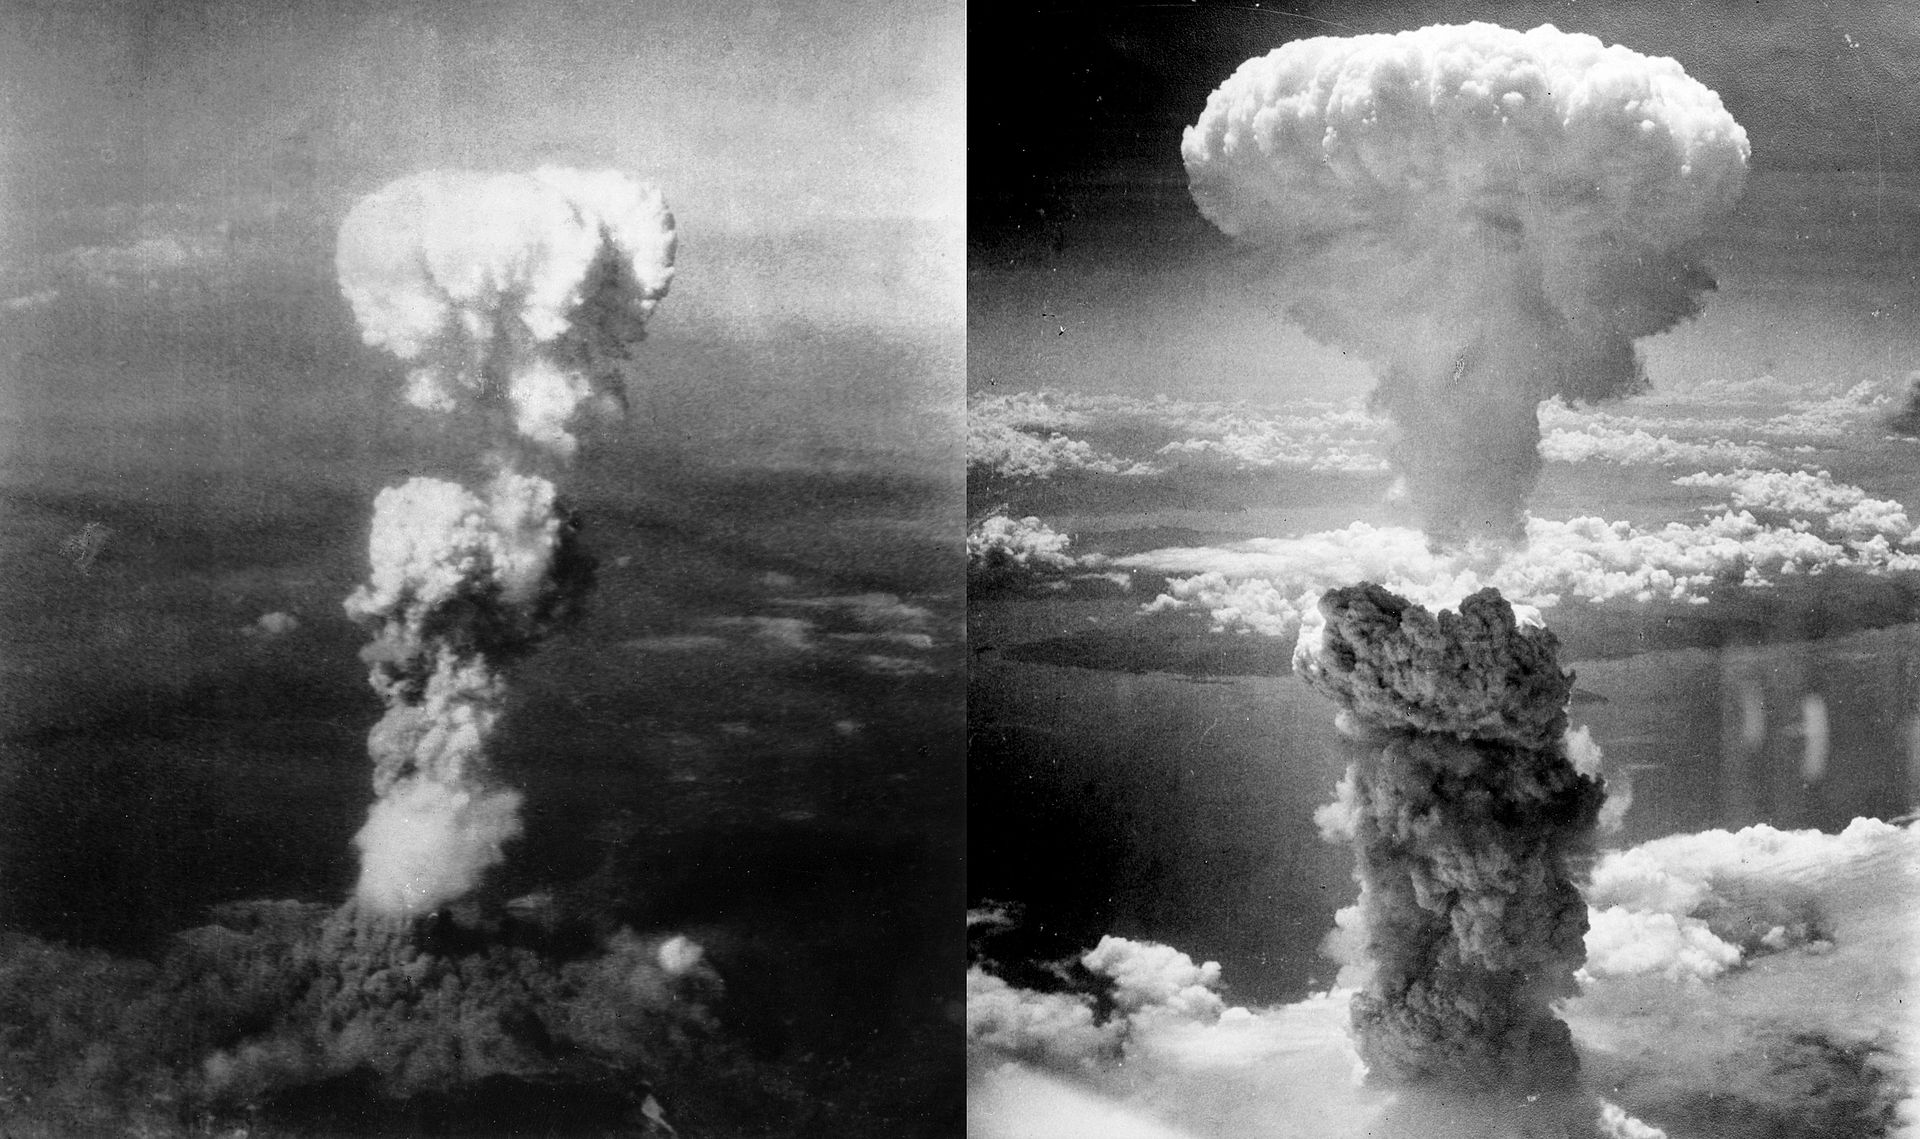 Little Boy explodes over Hiroshima, Japan, on August 6, 1945 (left); Fat Man explodes over Nagasaki, Japan, on August 9, 1945 (right). An estimated 120,000 people were killed as a result of the bombings.